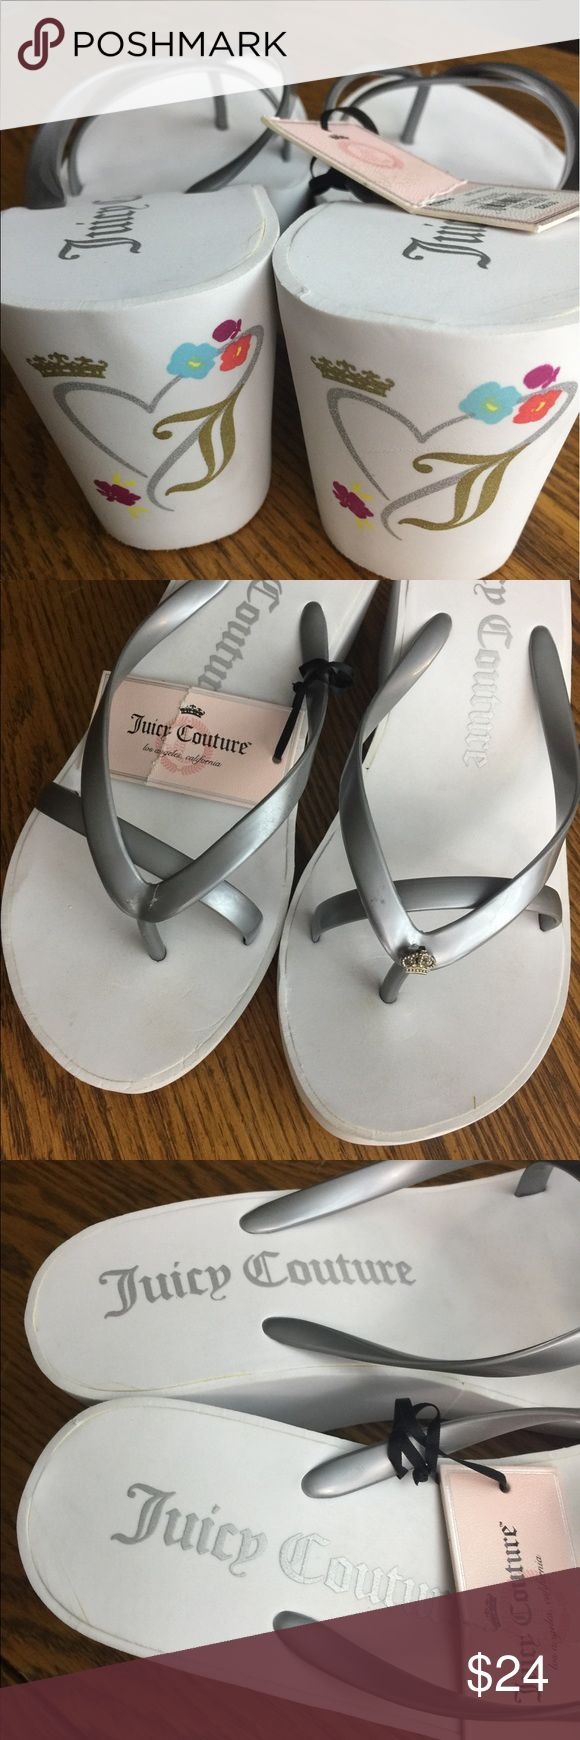 Juicy Couture White Tattoo Sandals M 7-8 New Juicy Couture white sandals silver straps  One sandal is missing the charm on the toes  White tattoo wedges  Soft soul  Perfect summer sandal would pair perfect with jeans, shorts, or a dress!! Shoes have some light scuffs and marks Juicy Couture Shoes Wedges